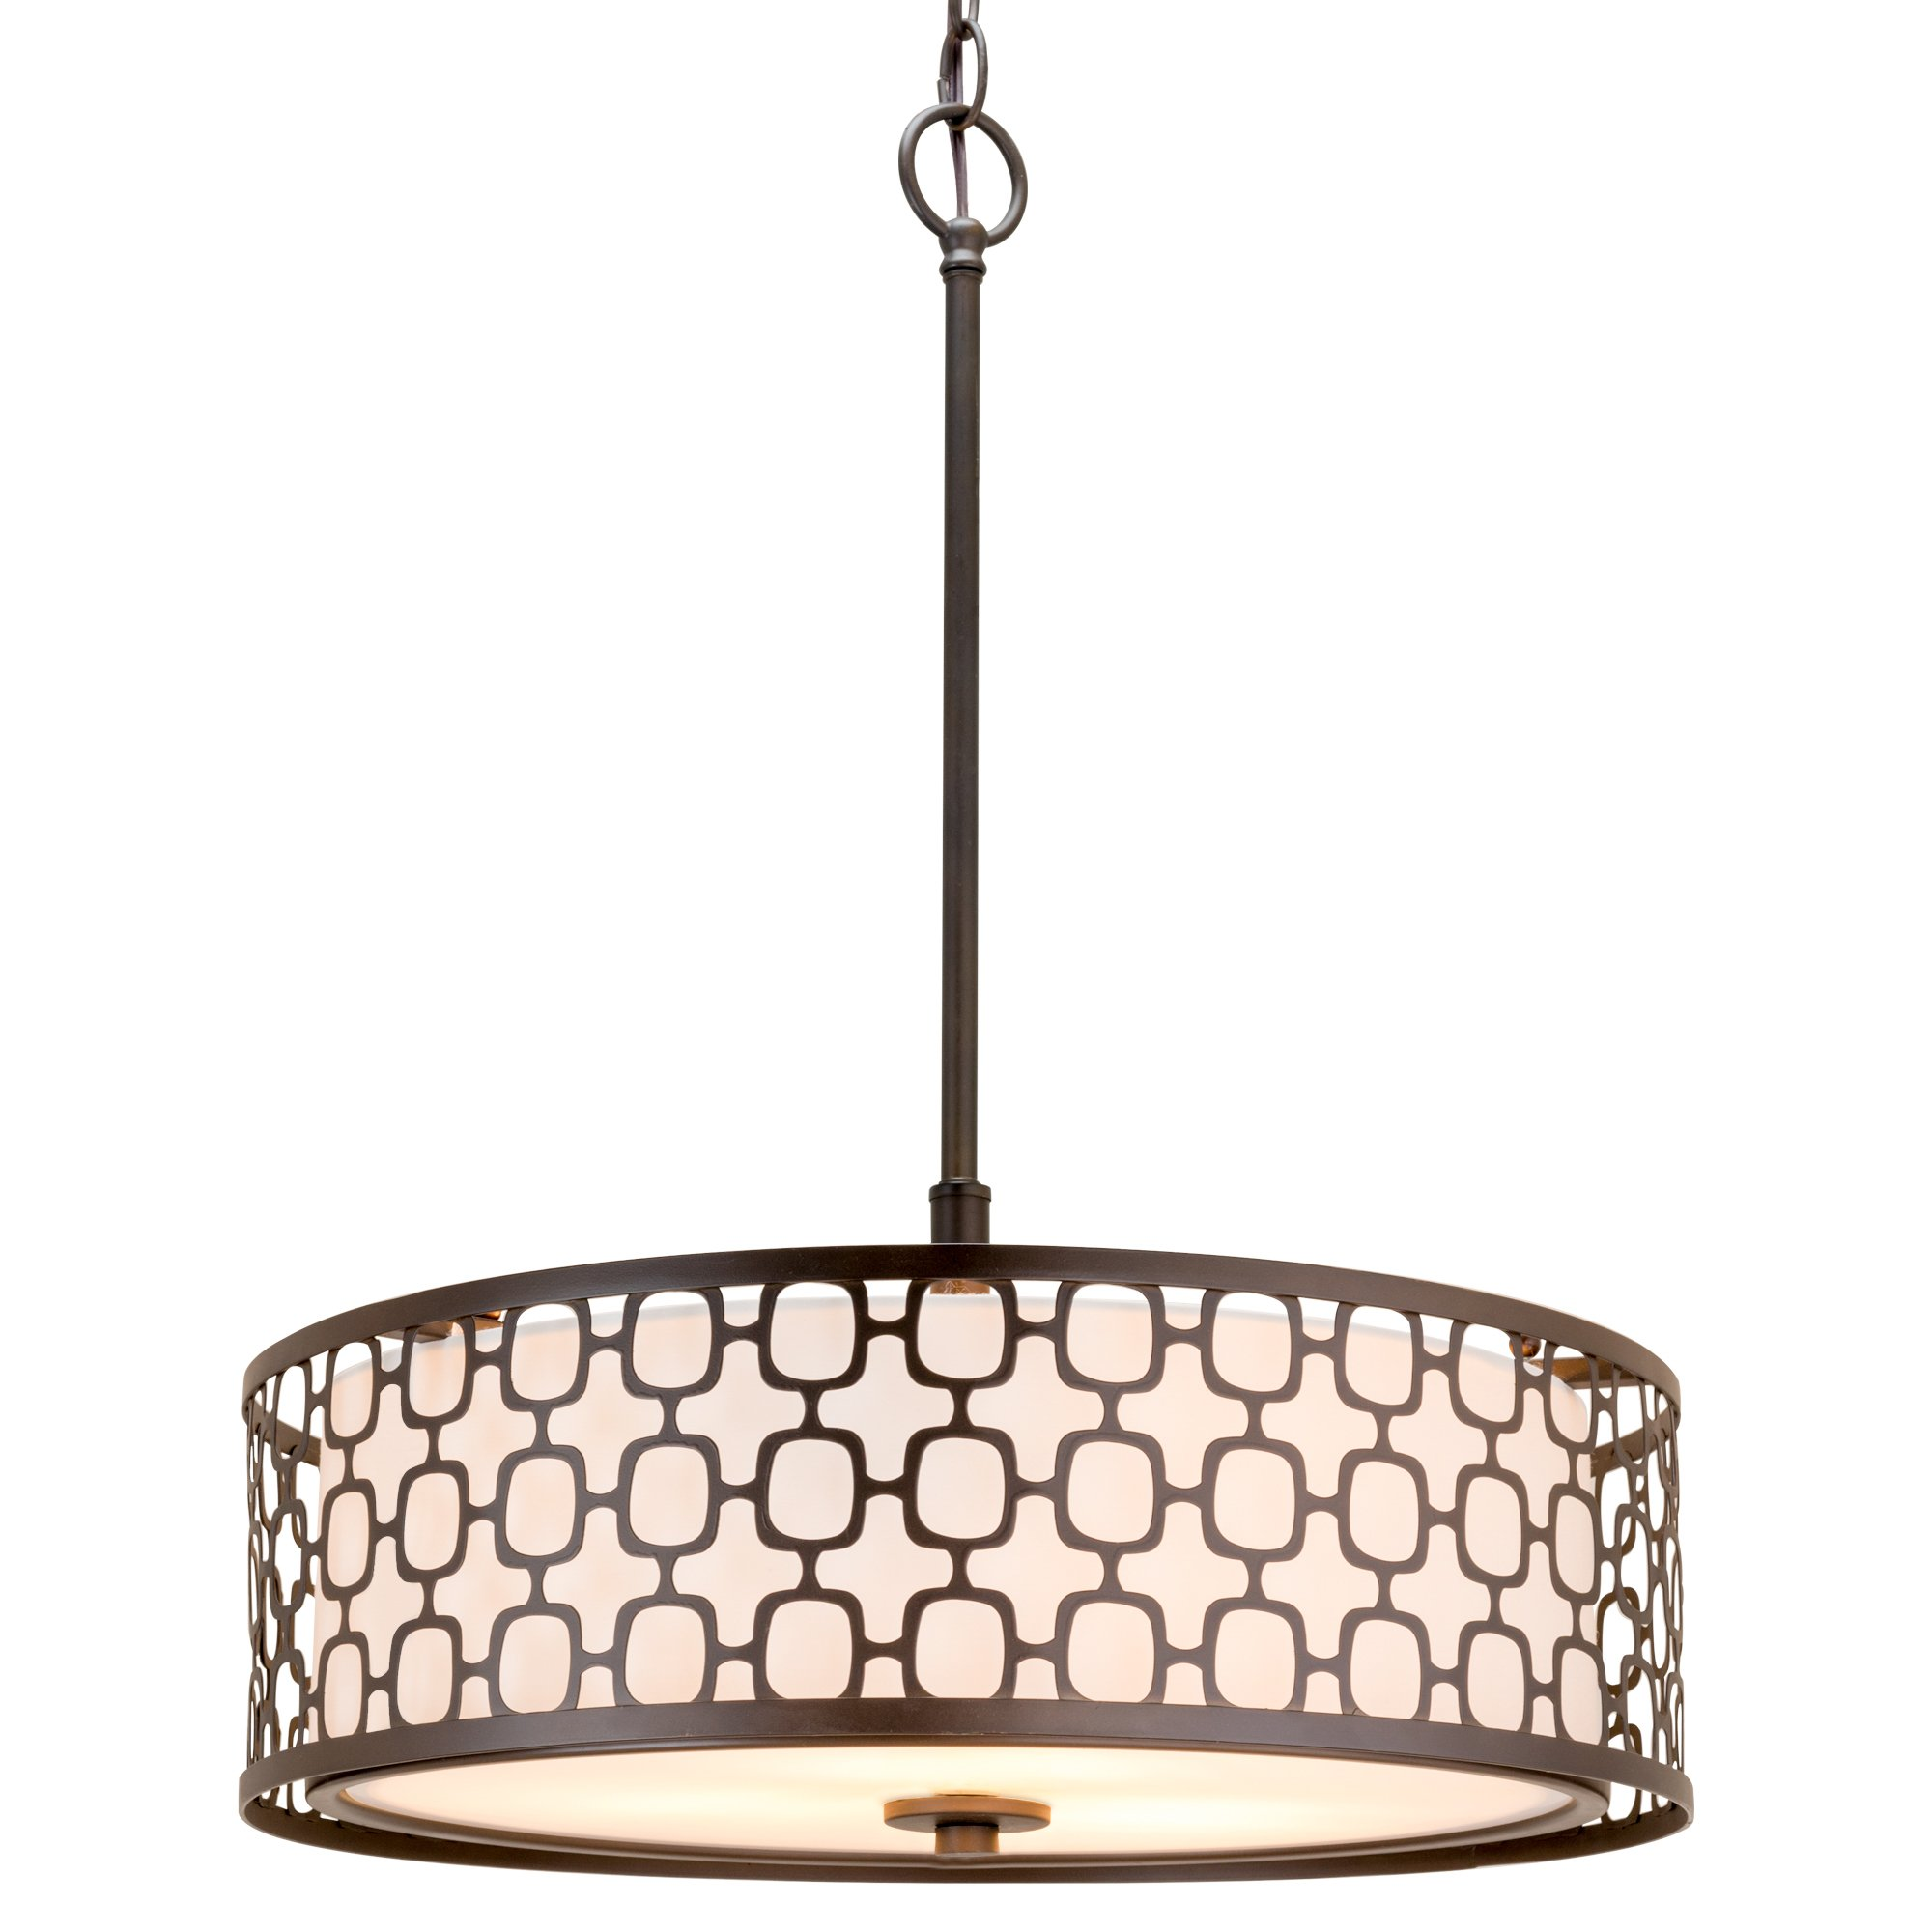 "Revel Harper 18"" Modern Metal Drum Chandelier with Lattice Shade"